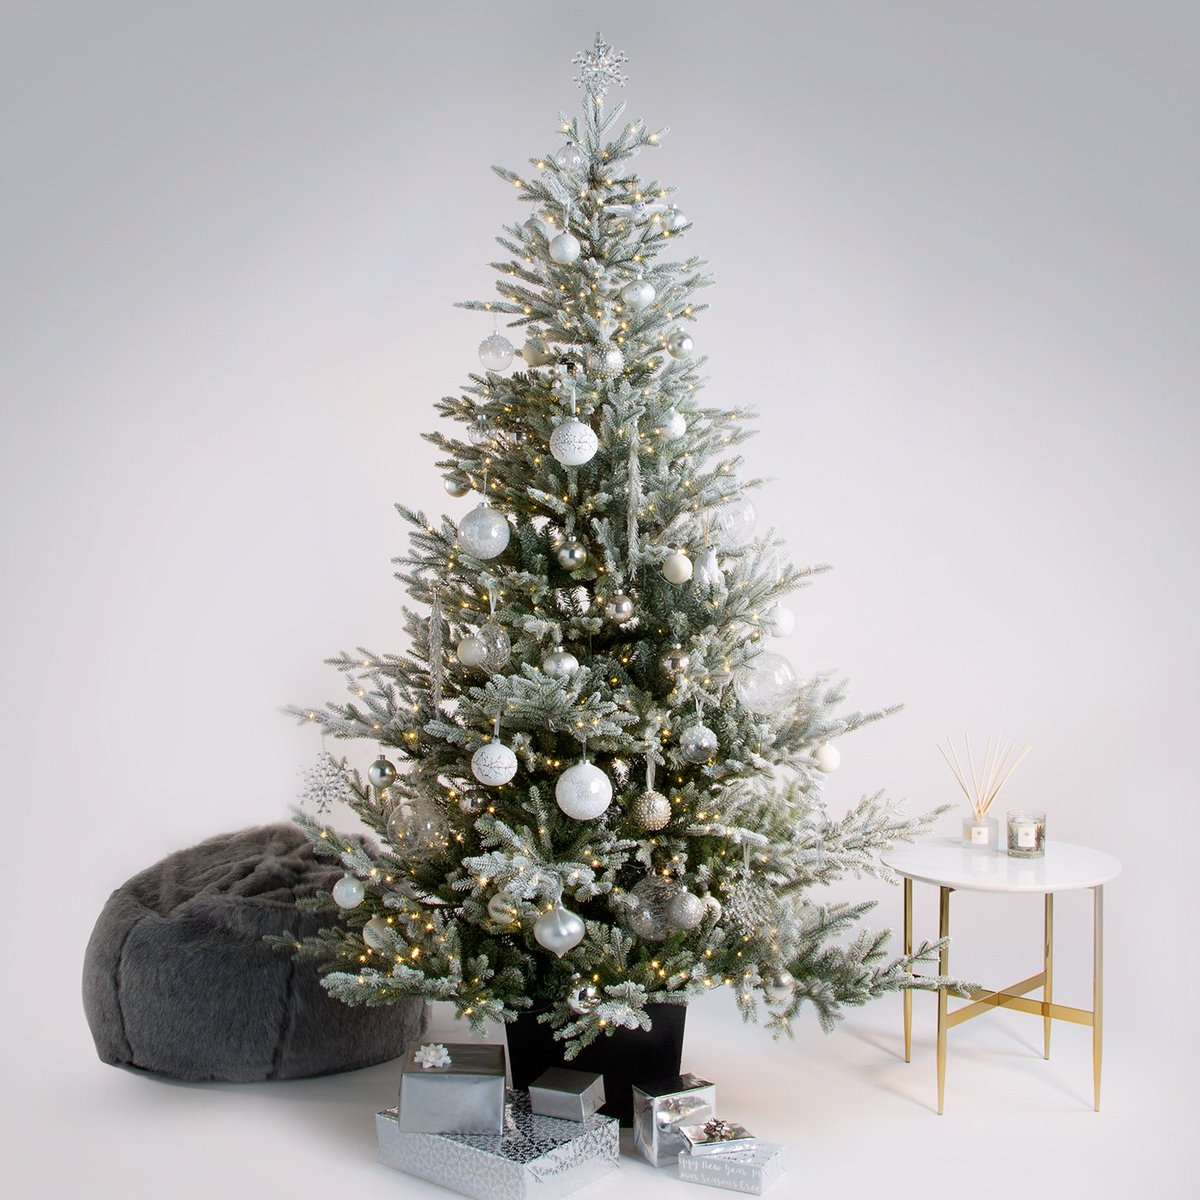 John Lewis Christmas Tree Themes.John Lewis Partners On Twitter Looking For Christmas